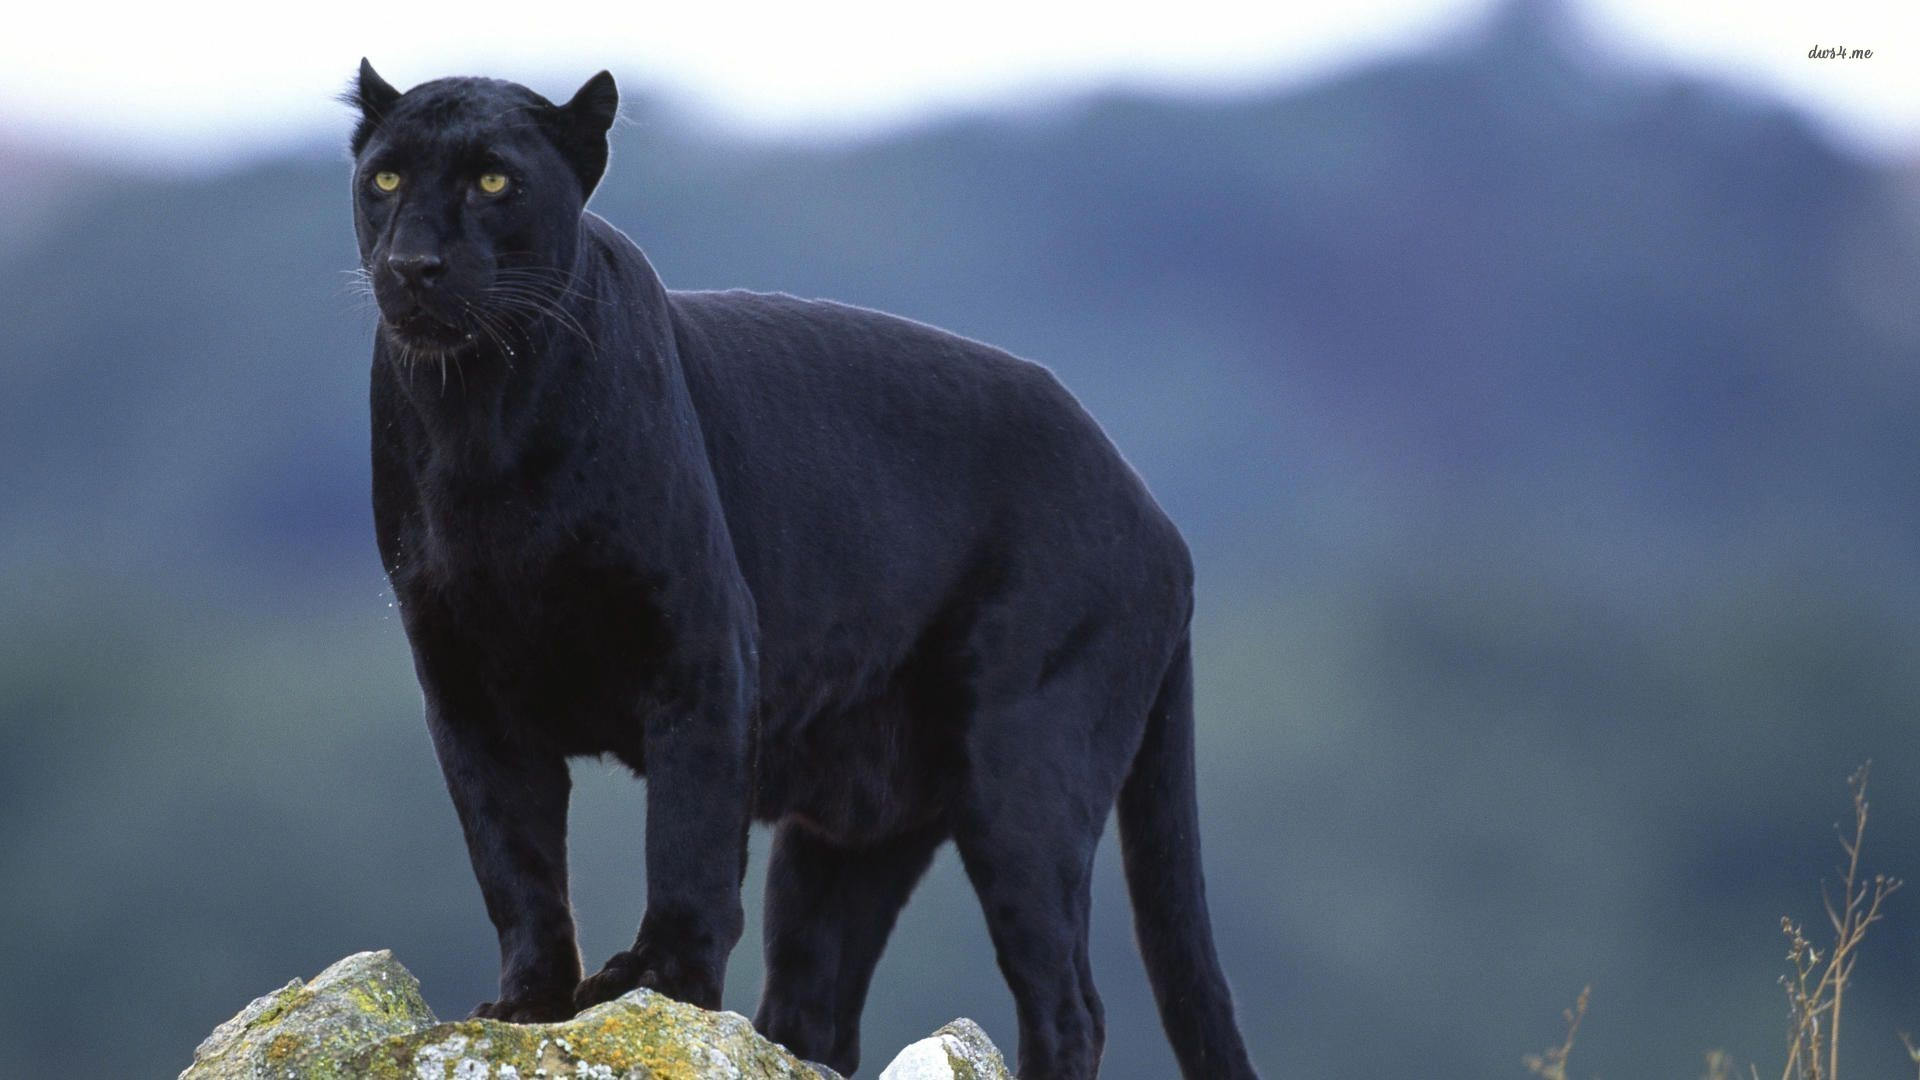 panther wallpapers 1 1920x1080